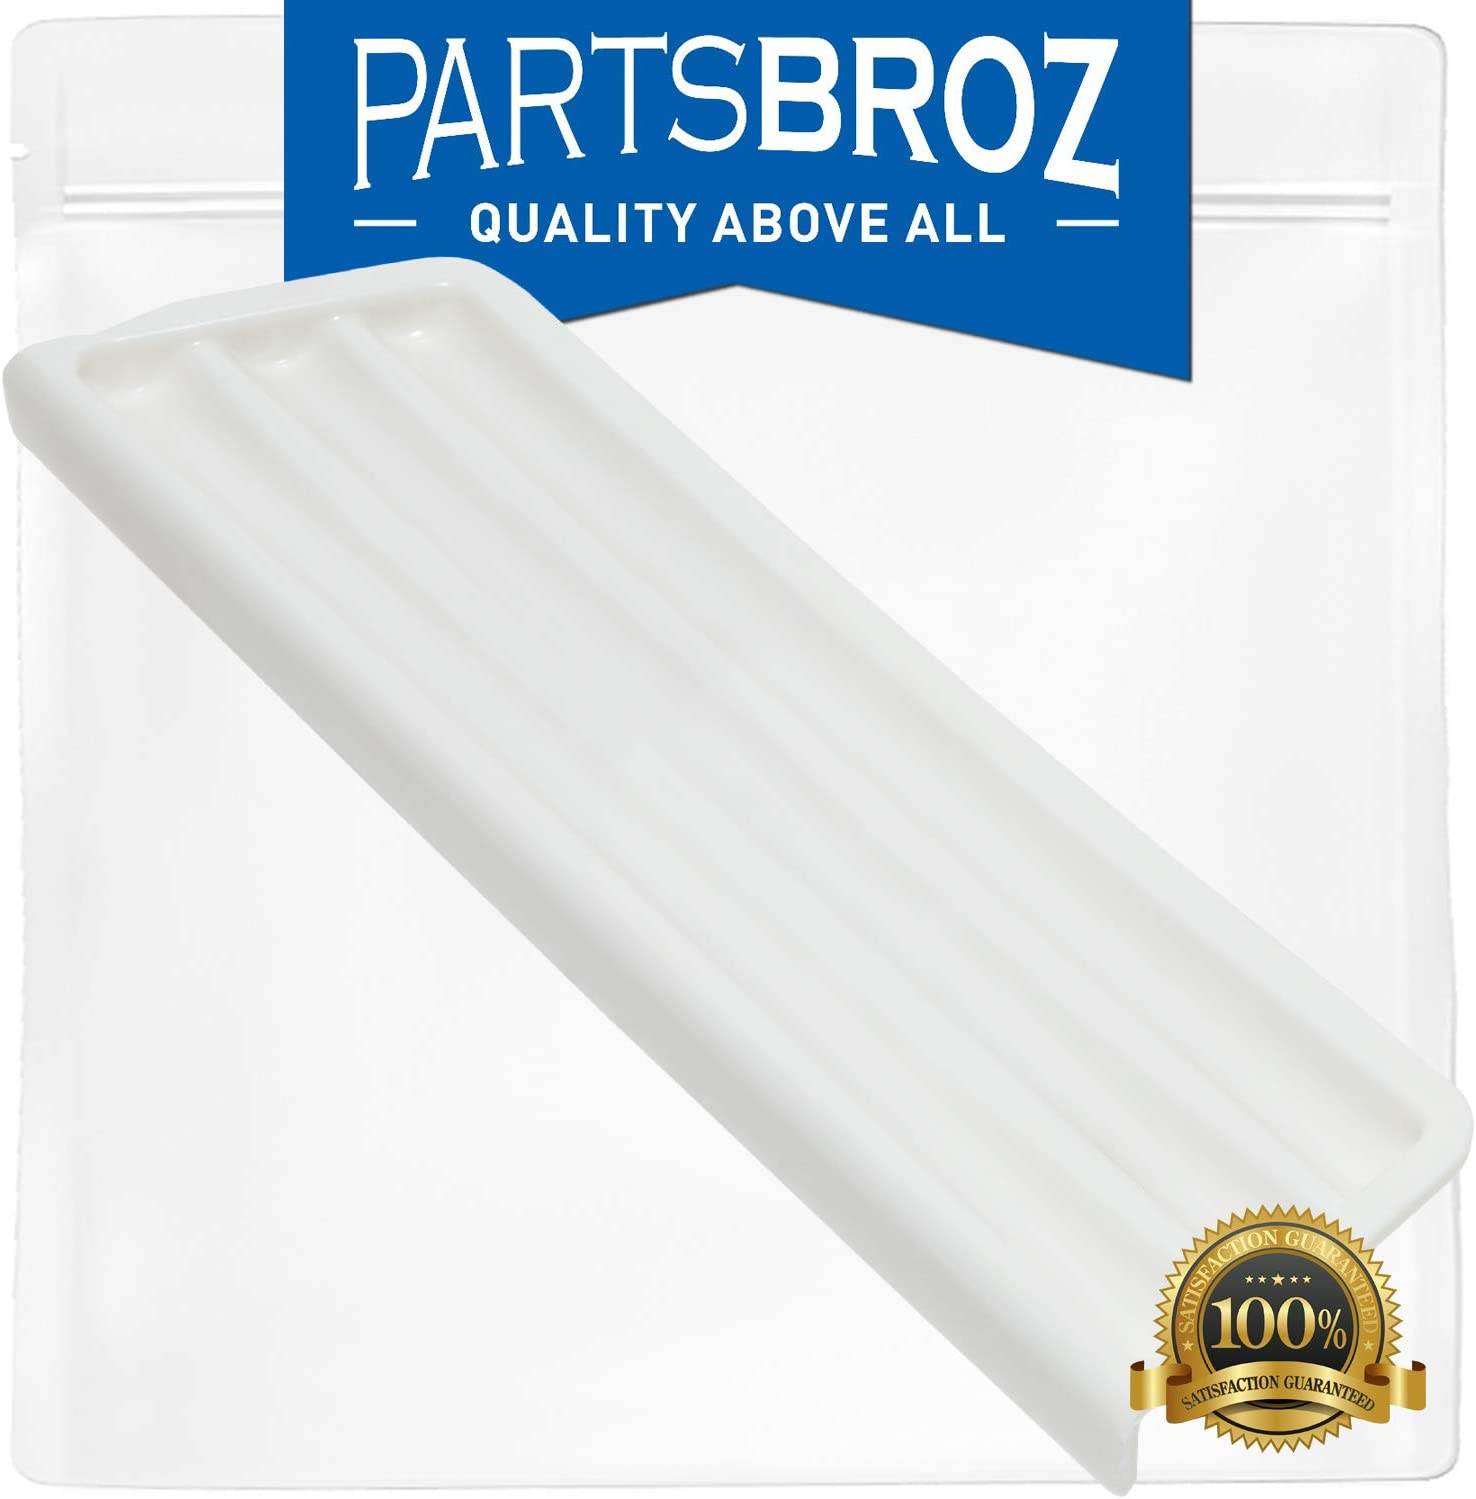 2206670W Dispenser Overflow Grille by PartsBroz - Compatible with Whirlpool Refrigerators - Replaces WP2206670W, AP6006549, PS11739625, W10189531, W10323445